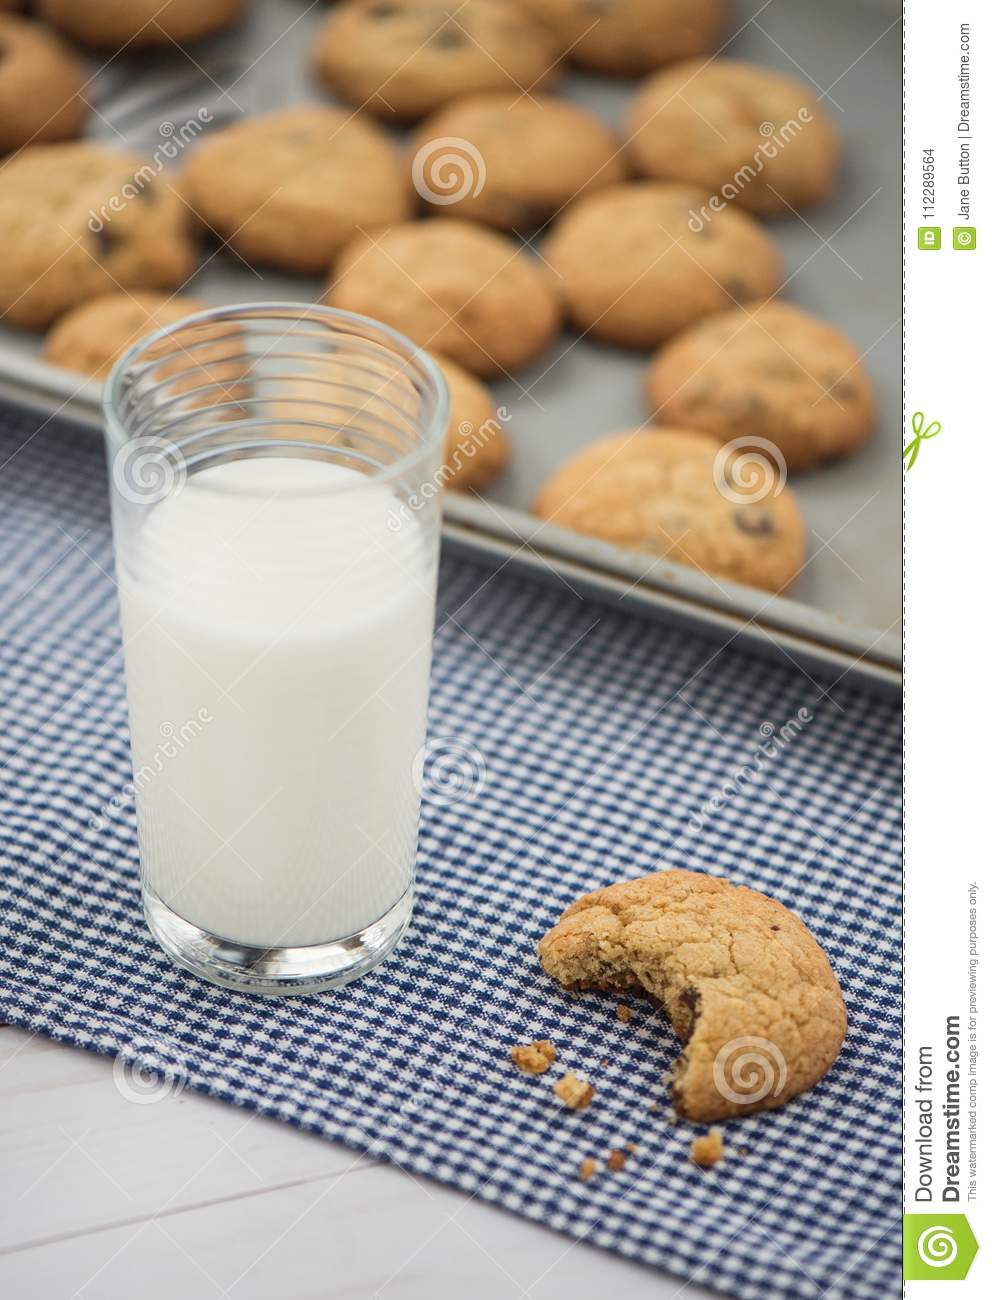 A glass of milk and a cookie with a bite taken out of it sit on